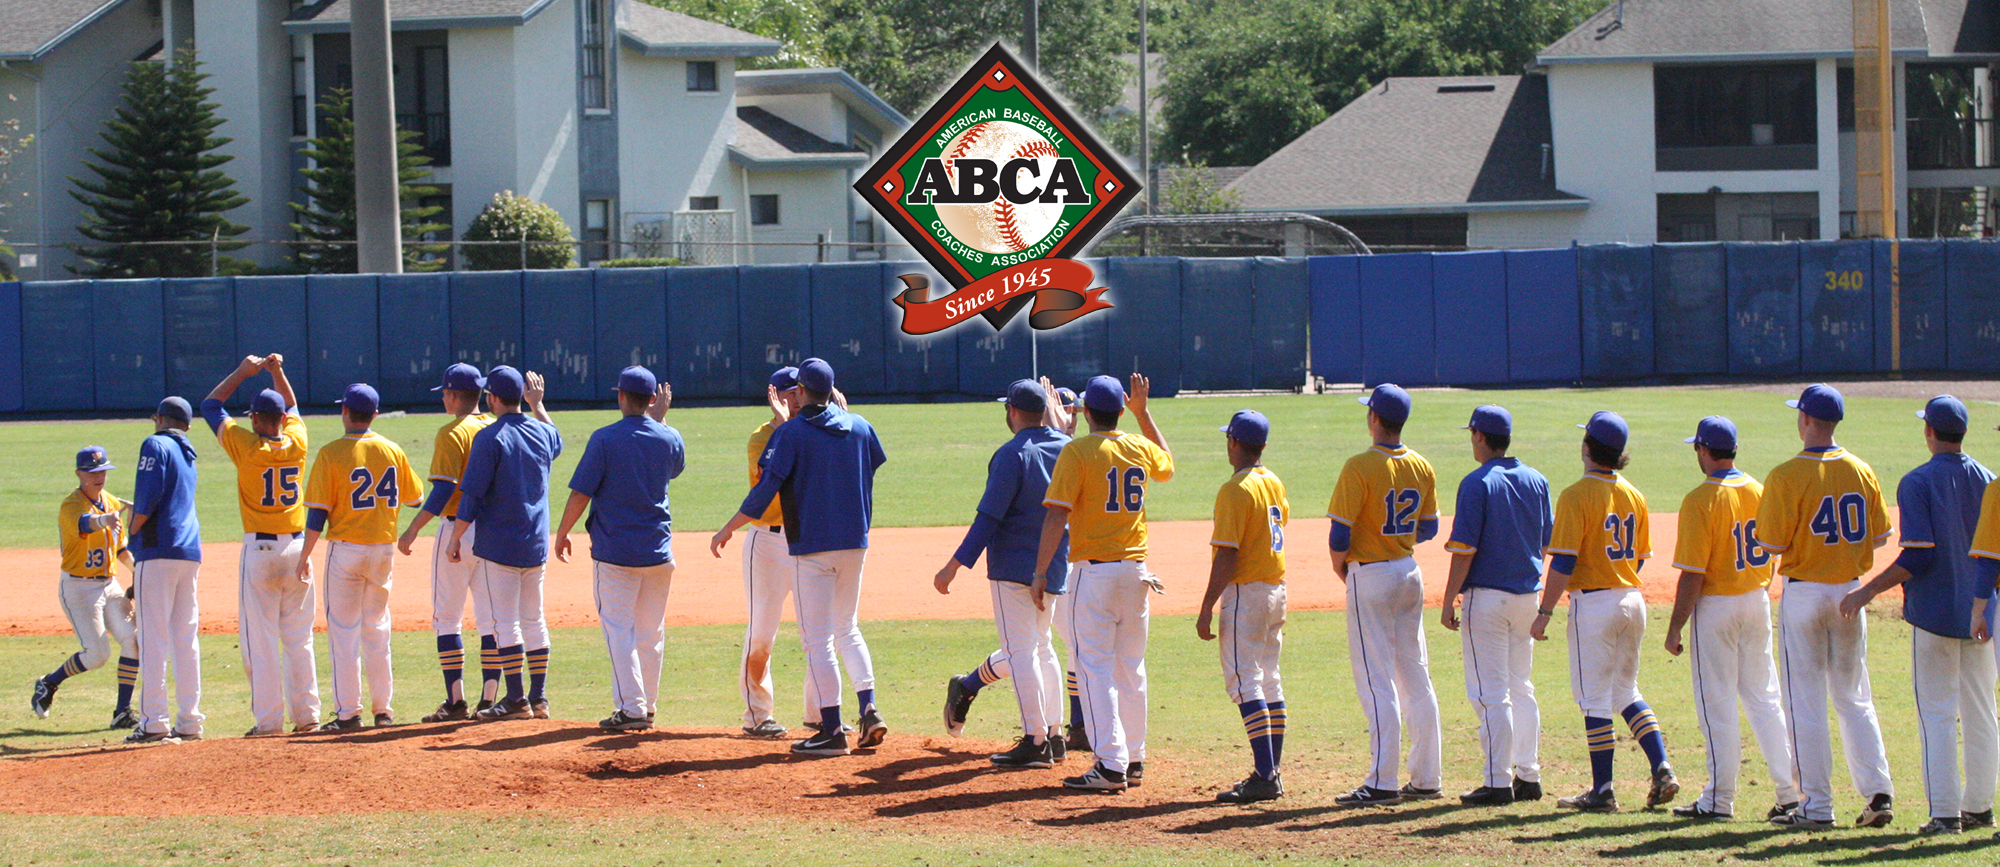 Golden Bears Break into ABCA National Poll at No. 28